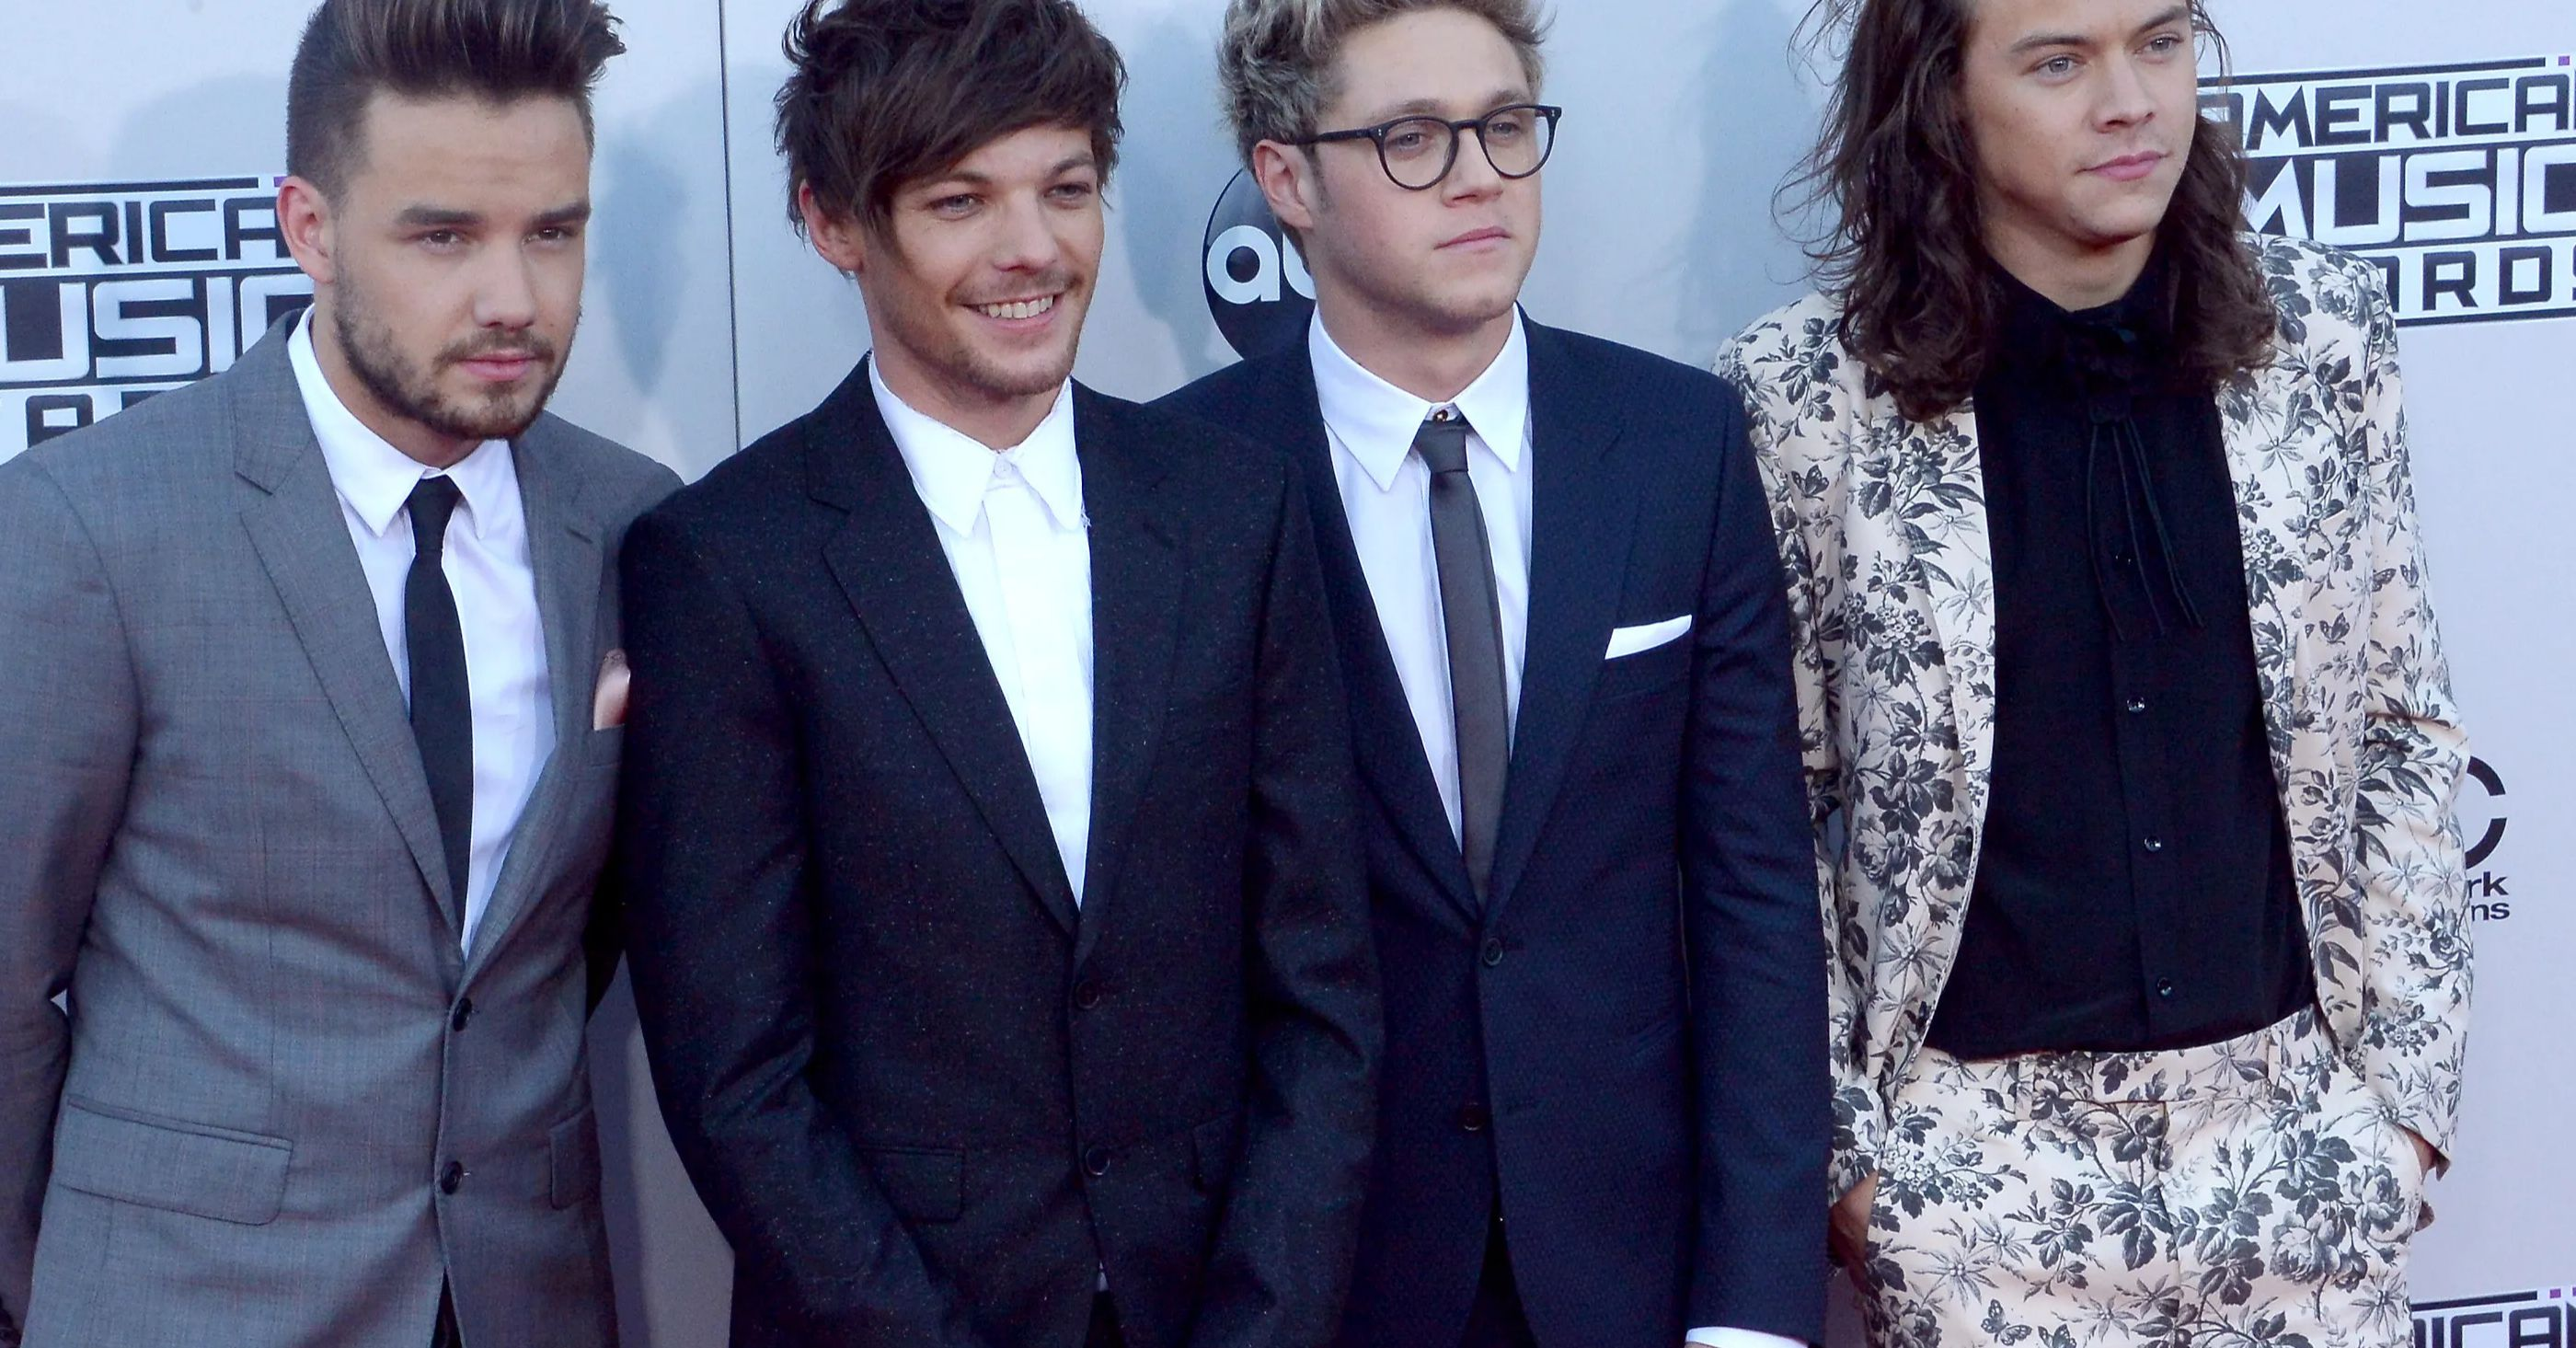 Liam Payne Tricks One Direction Fans Into Thinking Band Is Reuniting - The Blast